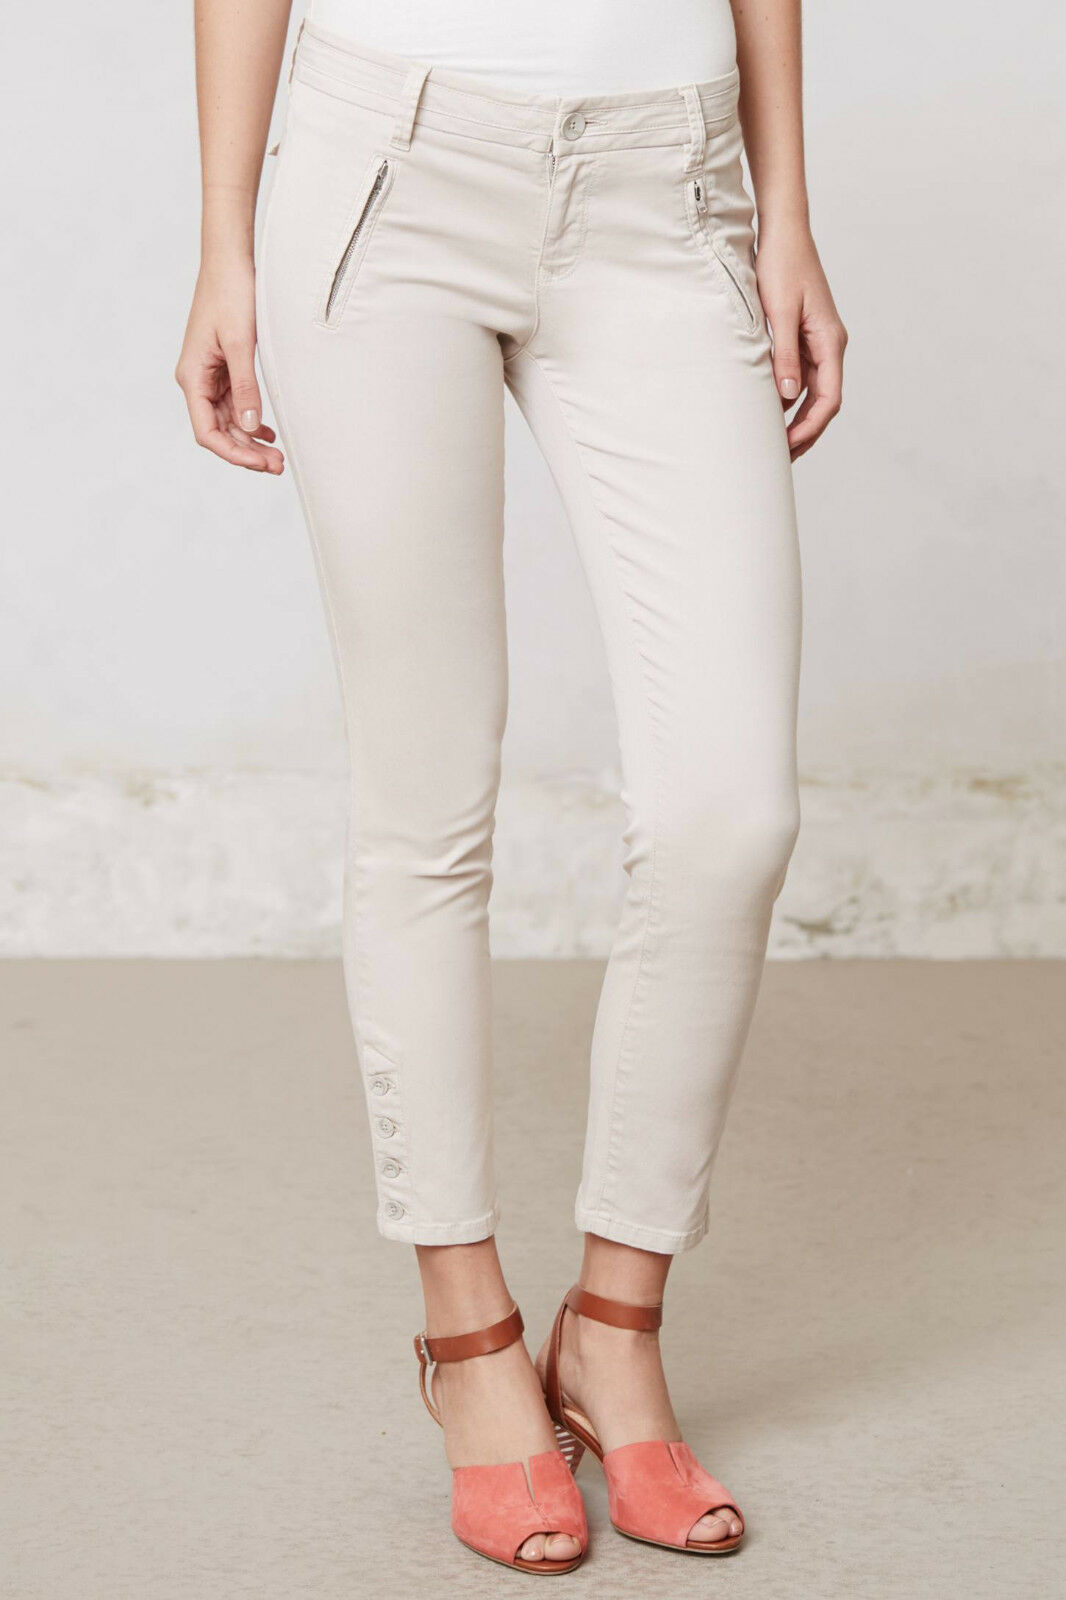 Level 99 Slim Twill Crops Pants Sizes 28, 32 Cream color NW ANTHROPOLOGIE Tag